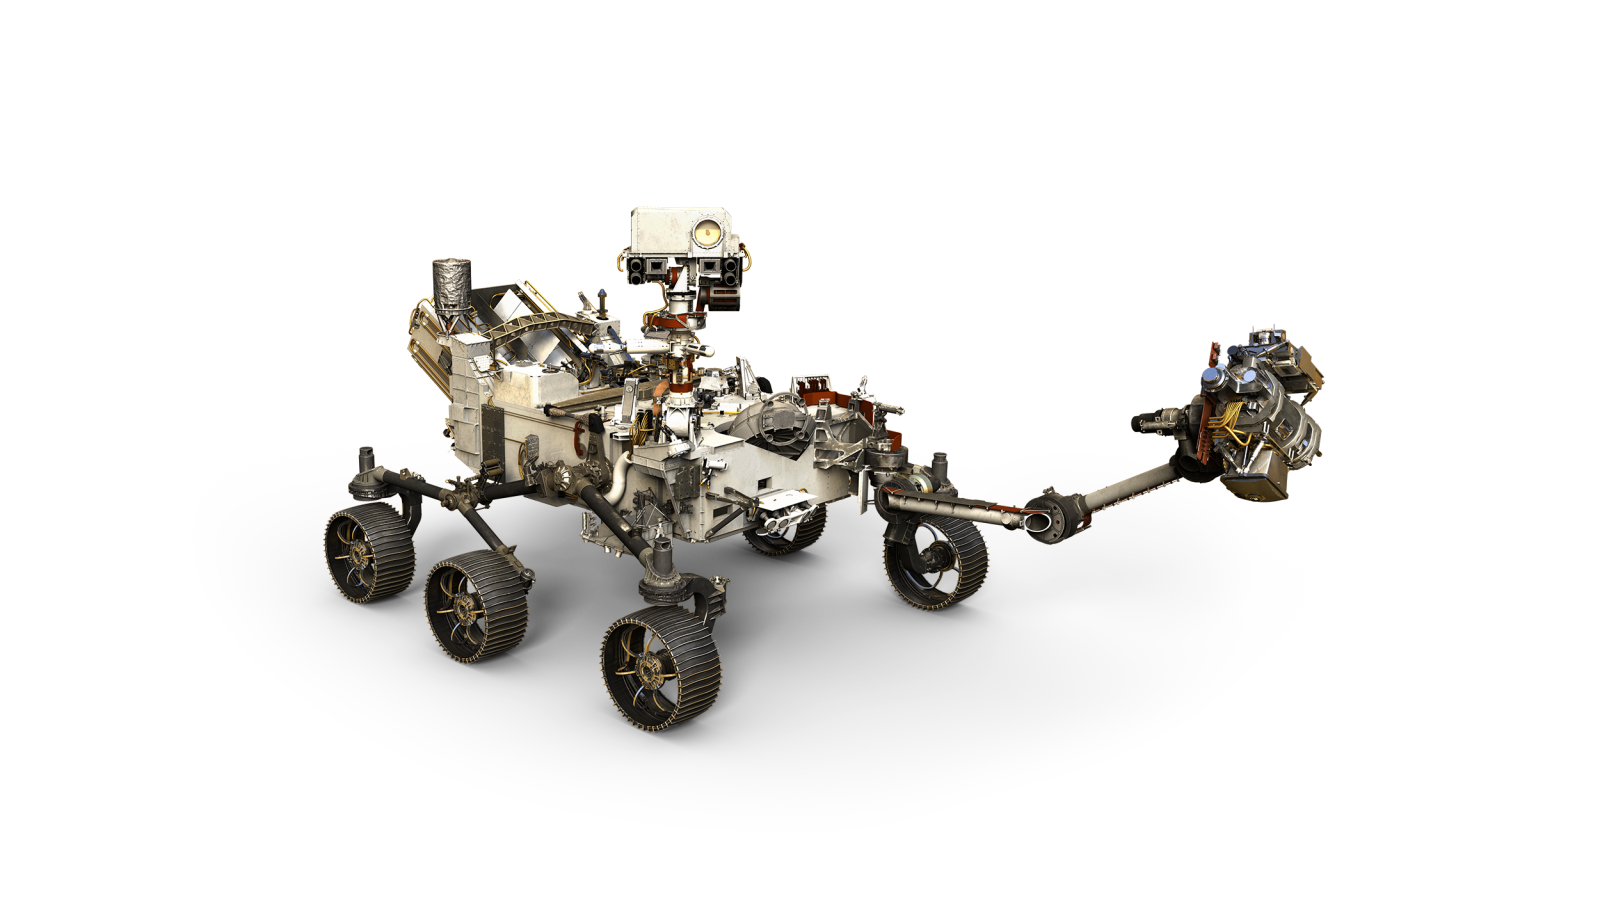 As the space agency prepares for its next Martian mission to involve a large rover, a smaller spacecraft operated by NASA already has the Red Planet in its sites. Image Credit: NASA/JPL-Caltech